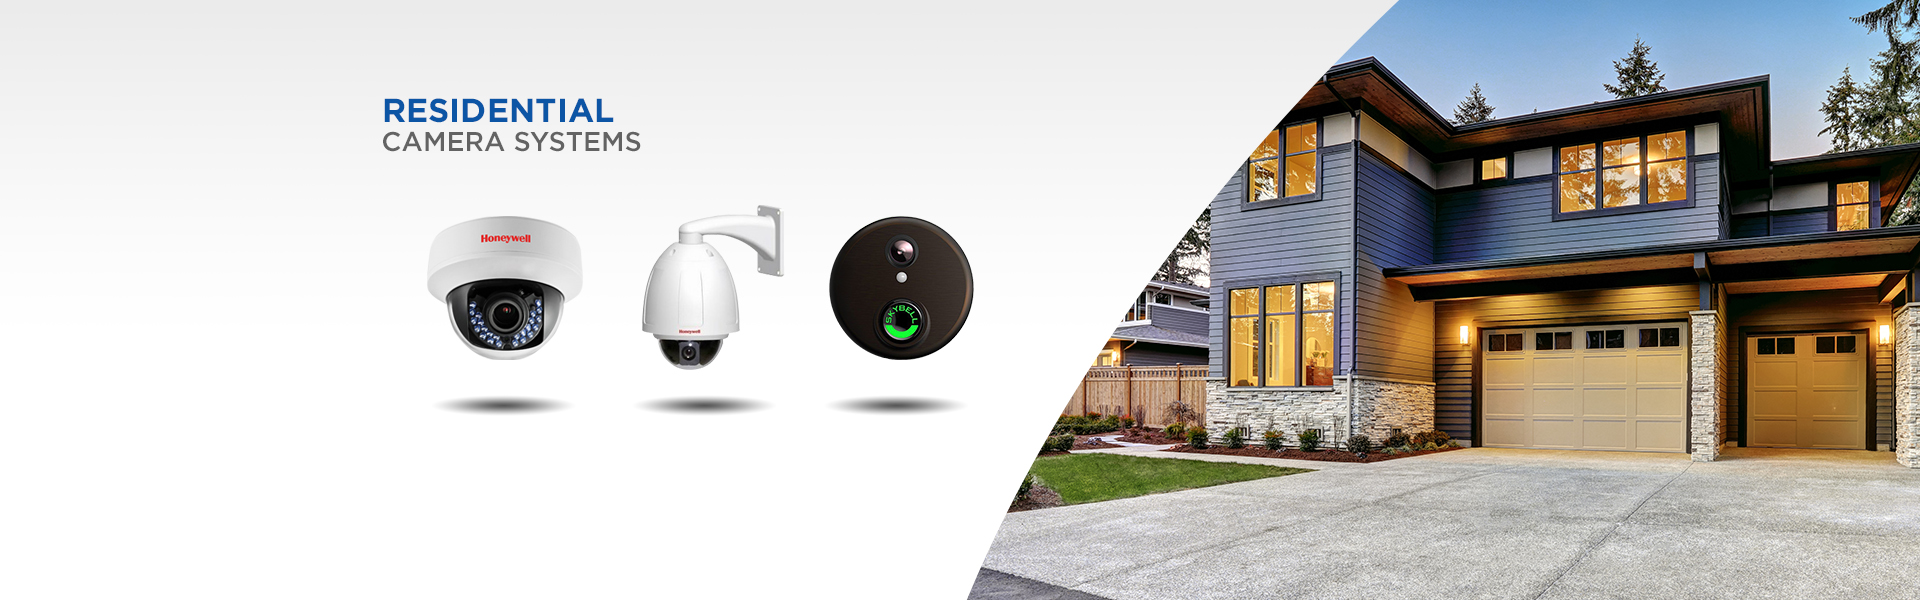 dont worry about whats going on know home security cameras can do far more than deter crime - Residential Security Cameras